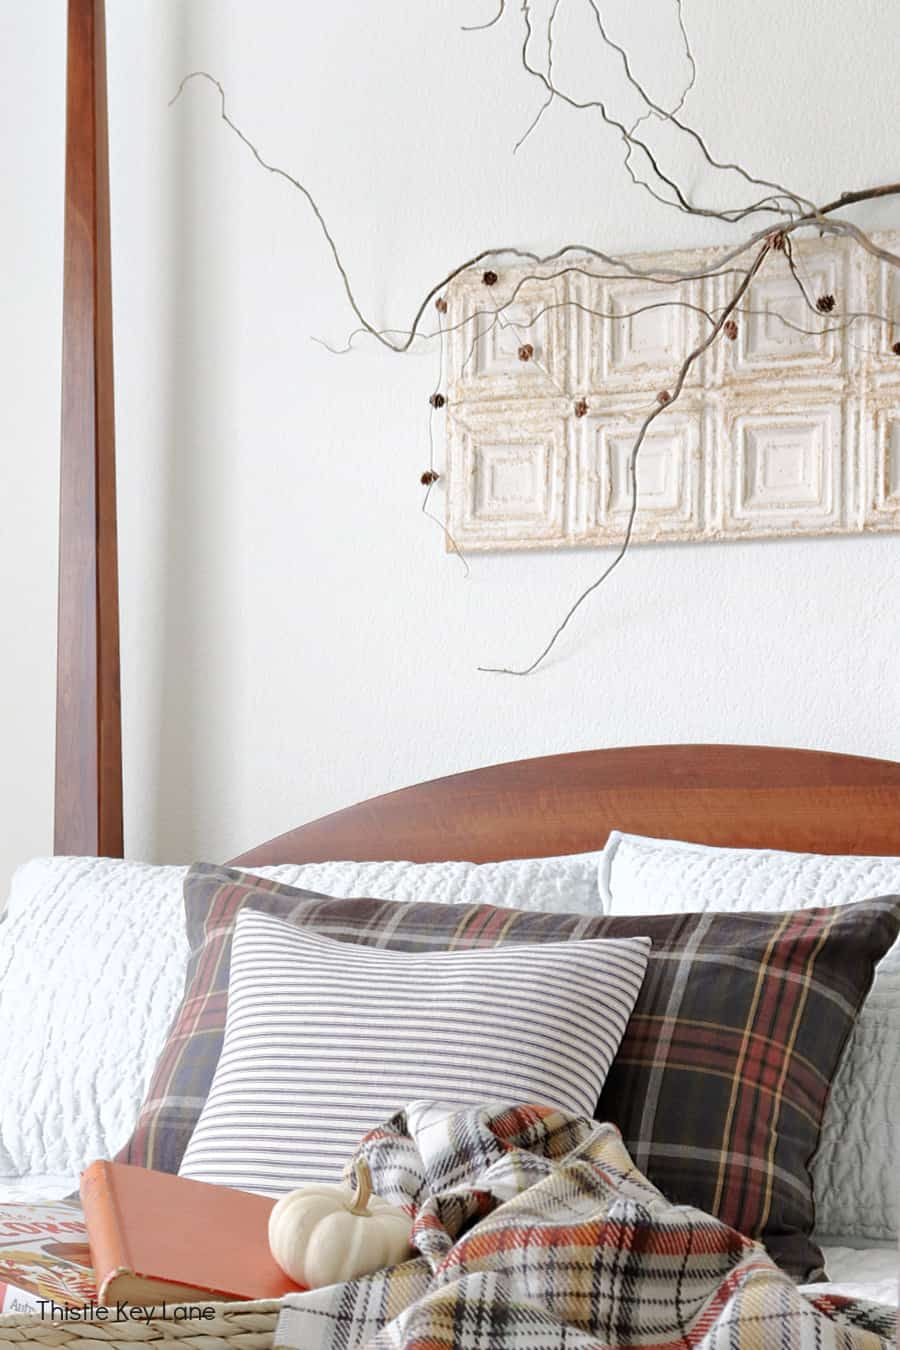 Accent pillows ticking and plaid on a bed. Simple Fall Bedroom Ideas.